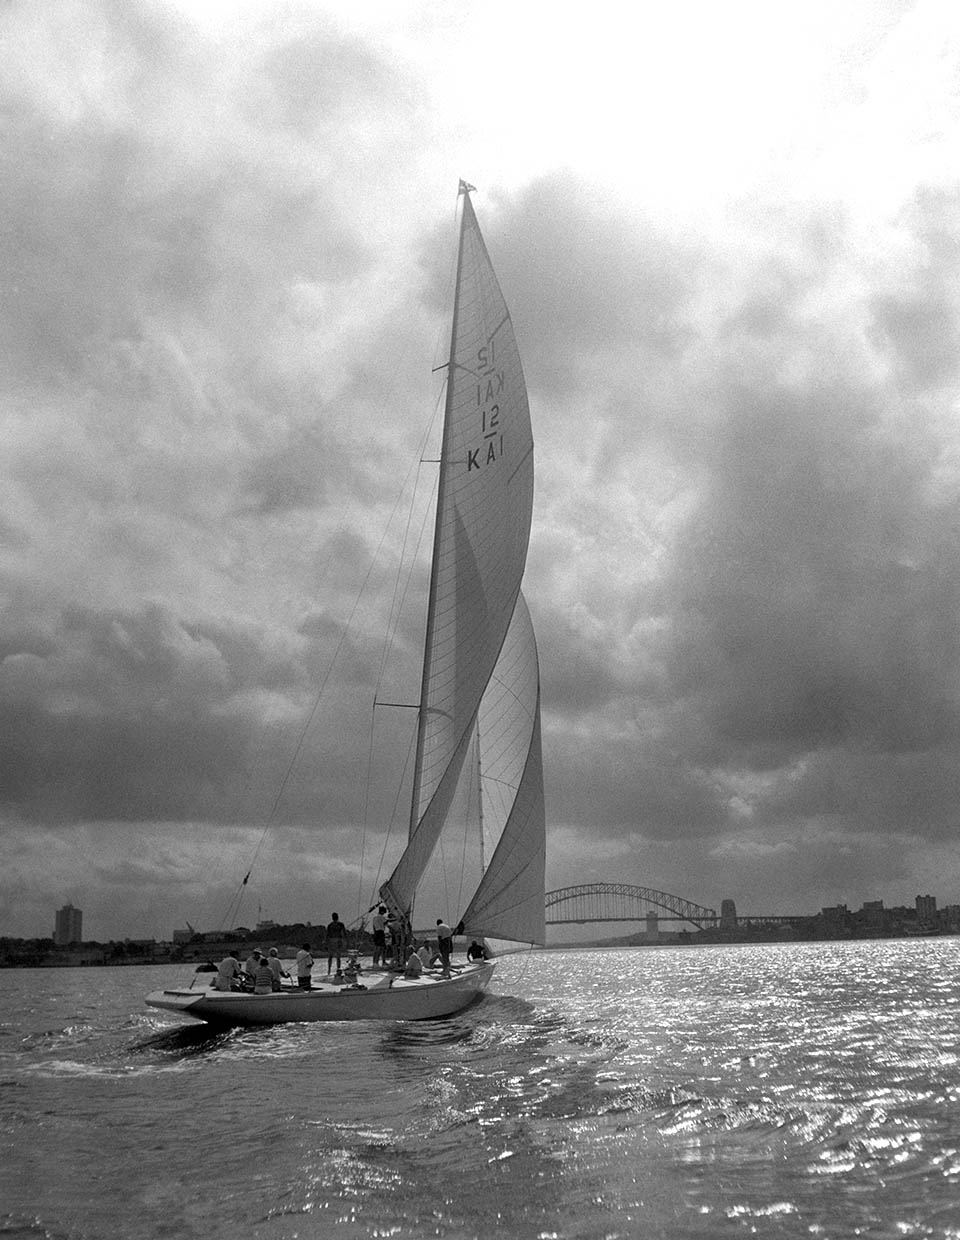 America S Cup Sailing Experience Yacht Sailing On Sydney Harbour - Gretel sailing in america s cup trials in sydney harbour 1961